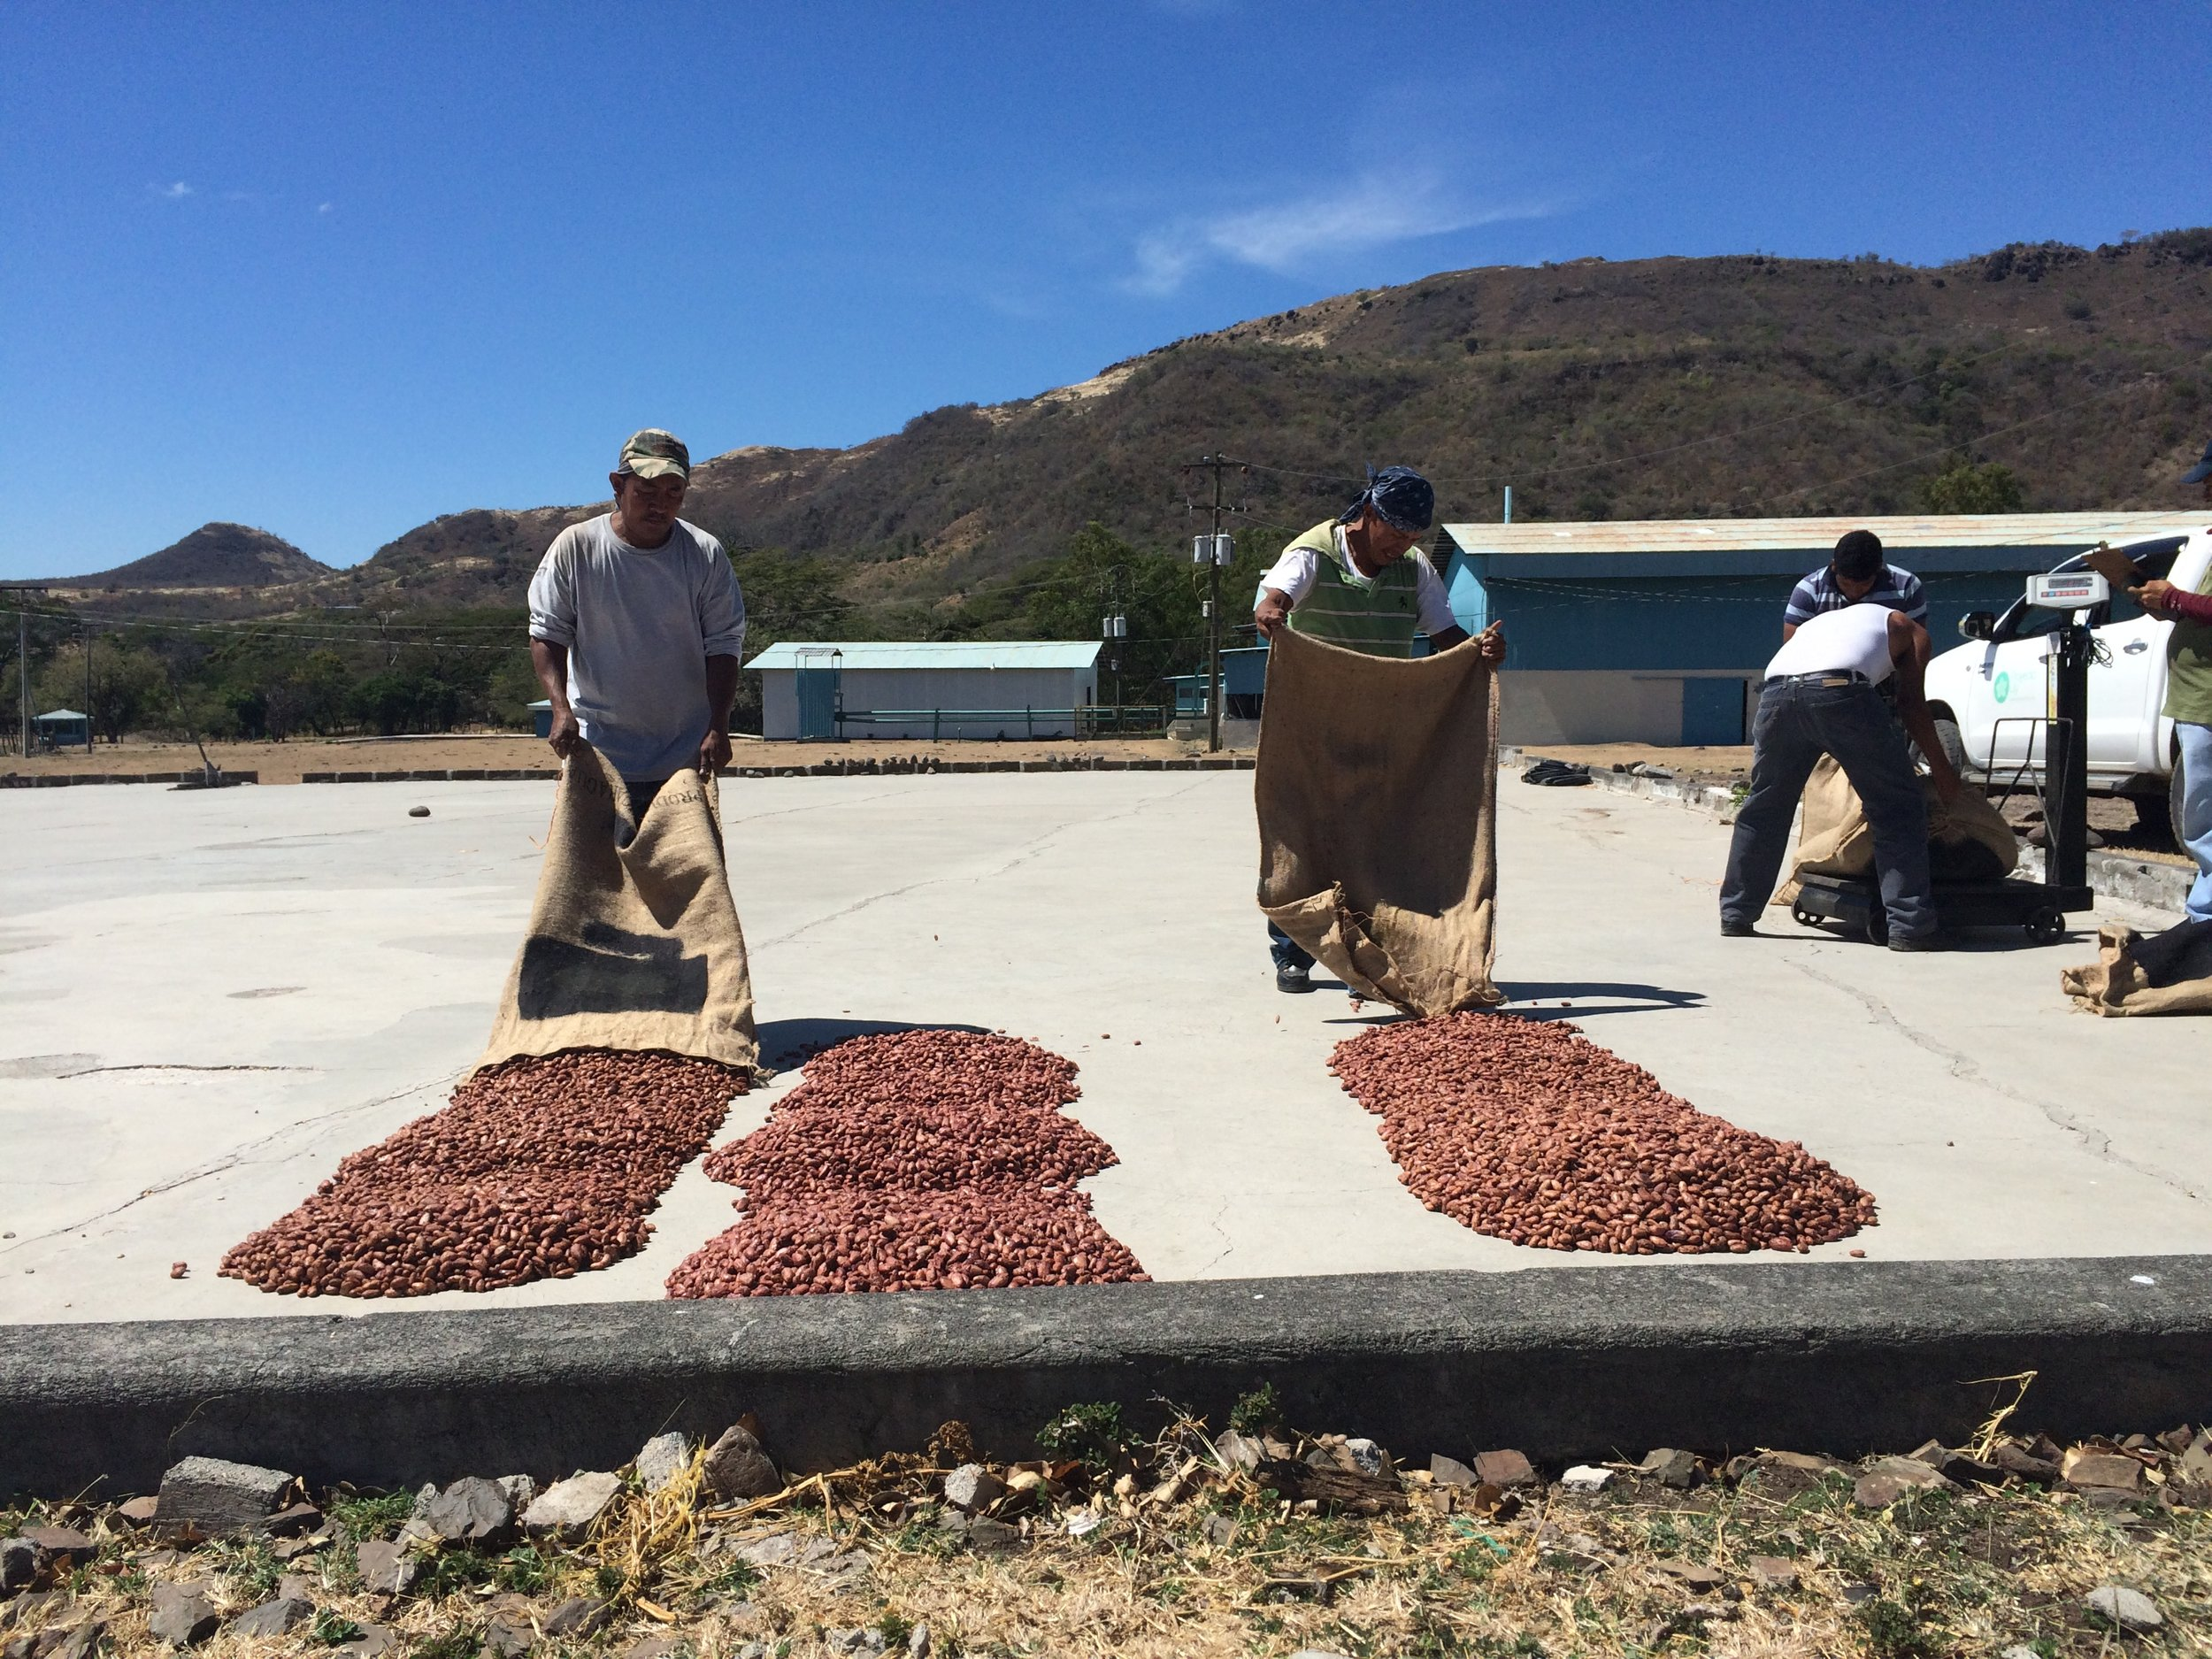 Drying the cacao in open air